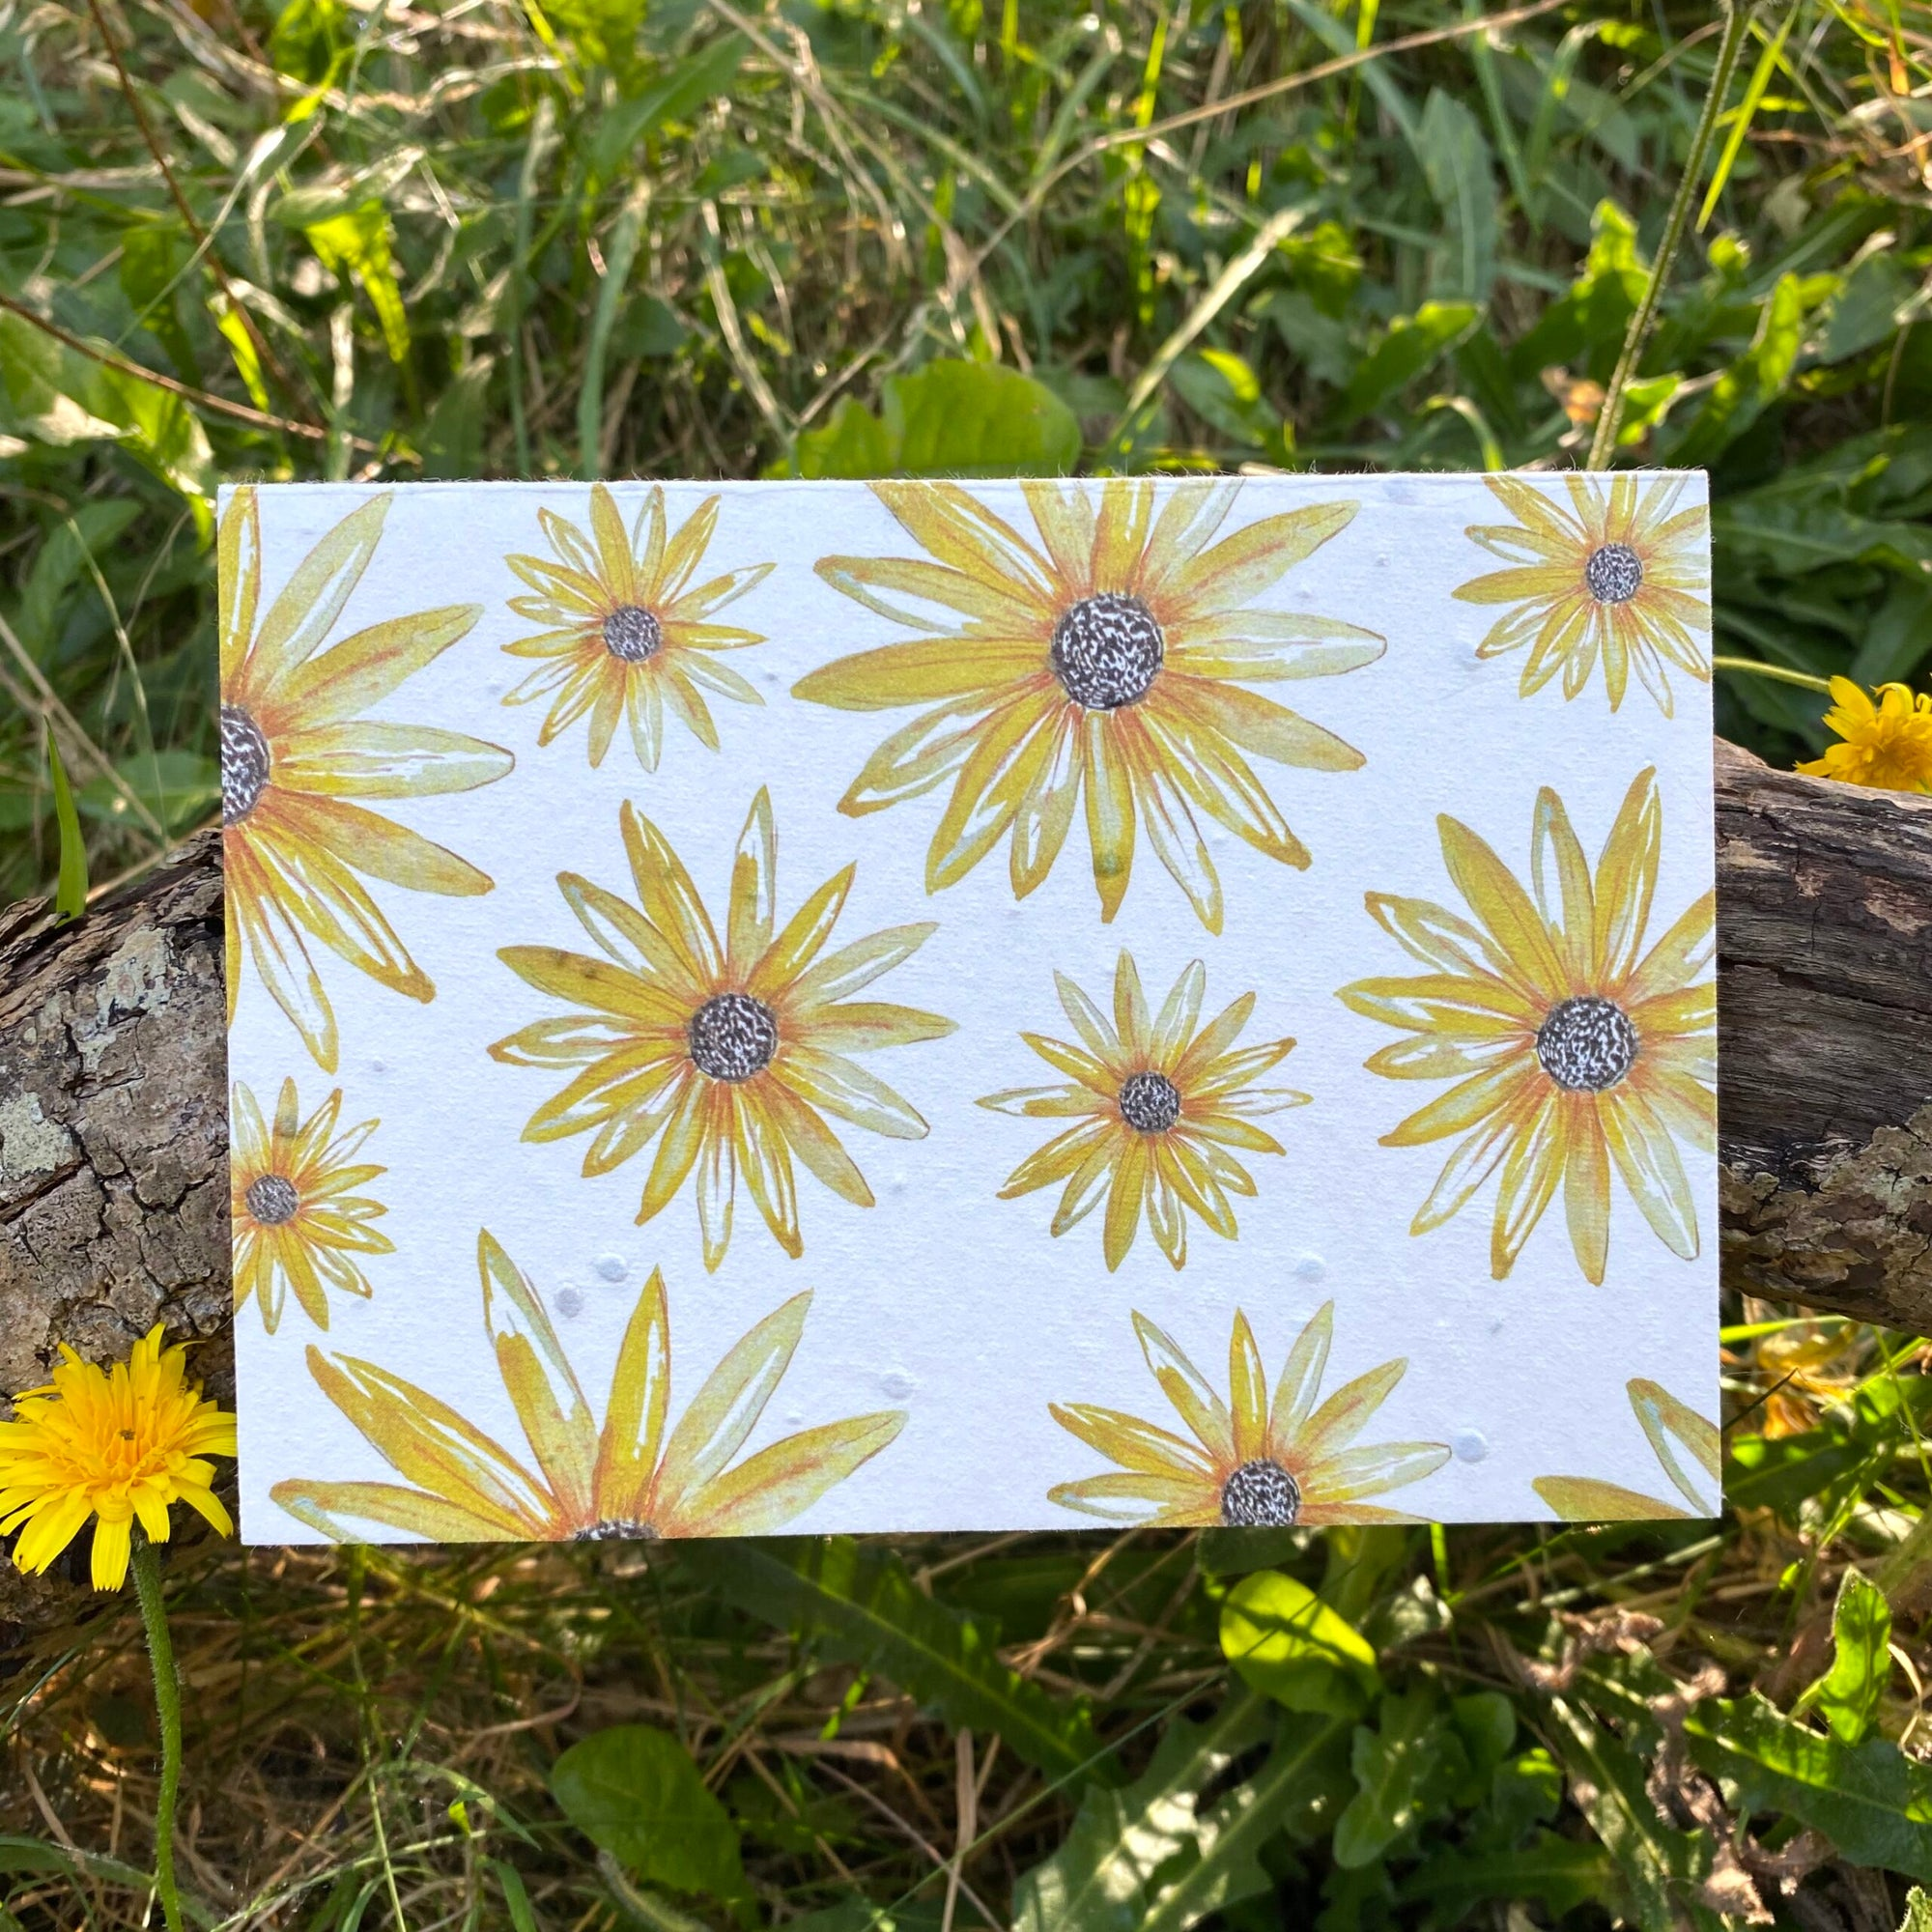 Rudbeckia Flowers - Plantable Wildflower Card | Greetings Card - The Naughty Shrew